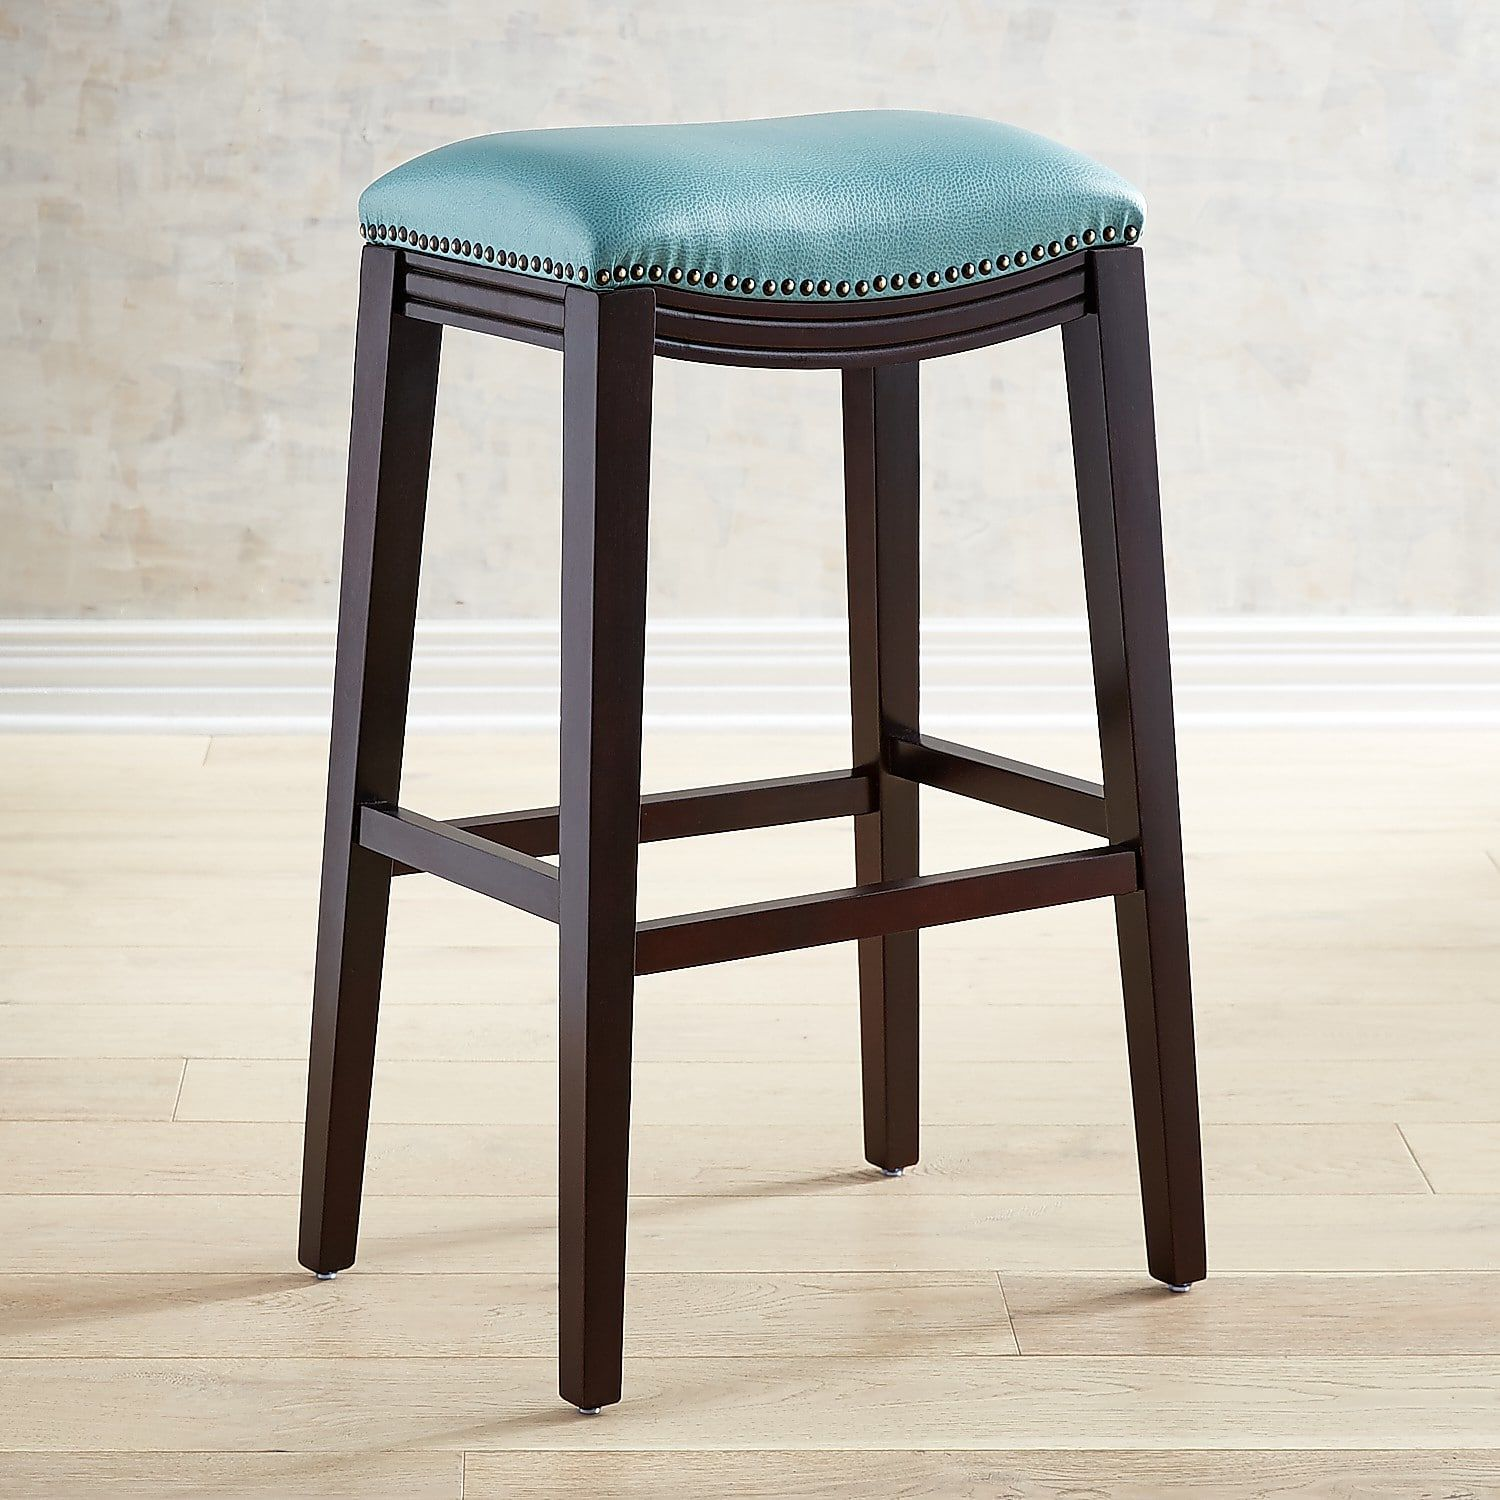 Marvelous Halsted Aqua Blue Counter Bar Stool With Espresso Legs Onthecornerstone Fun Painted Chair Ideas Images Onthecornerstoneorg